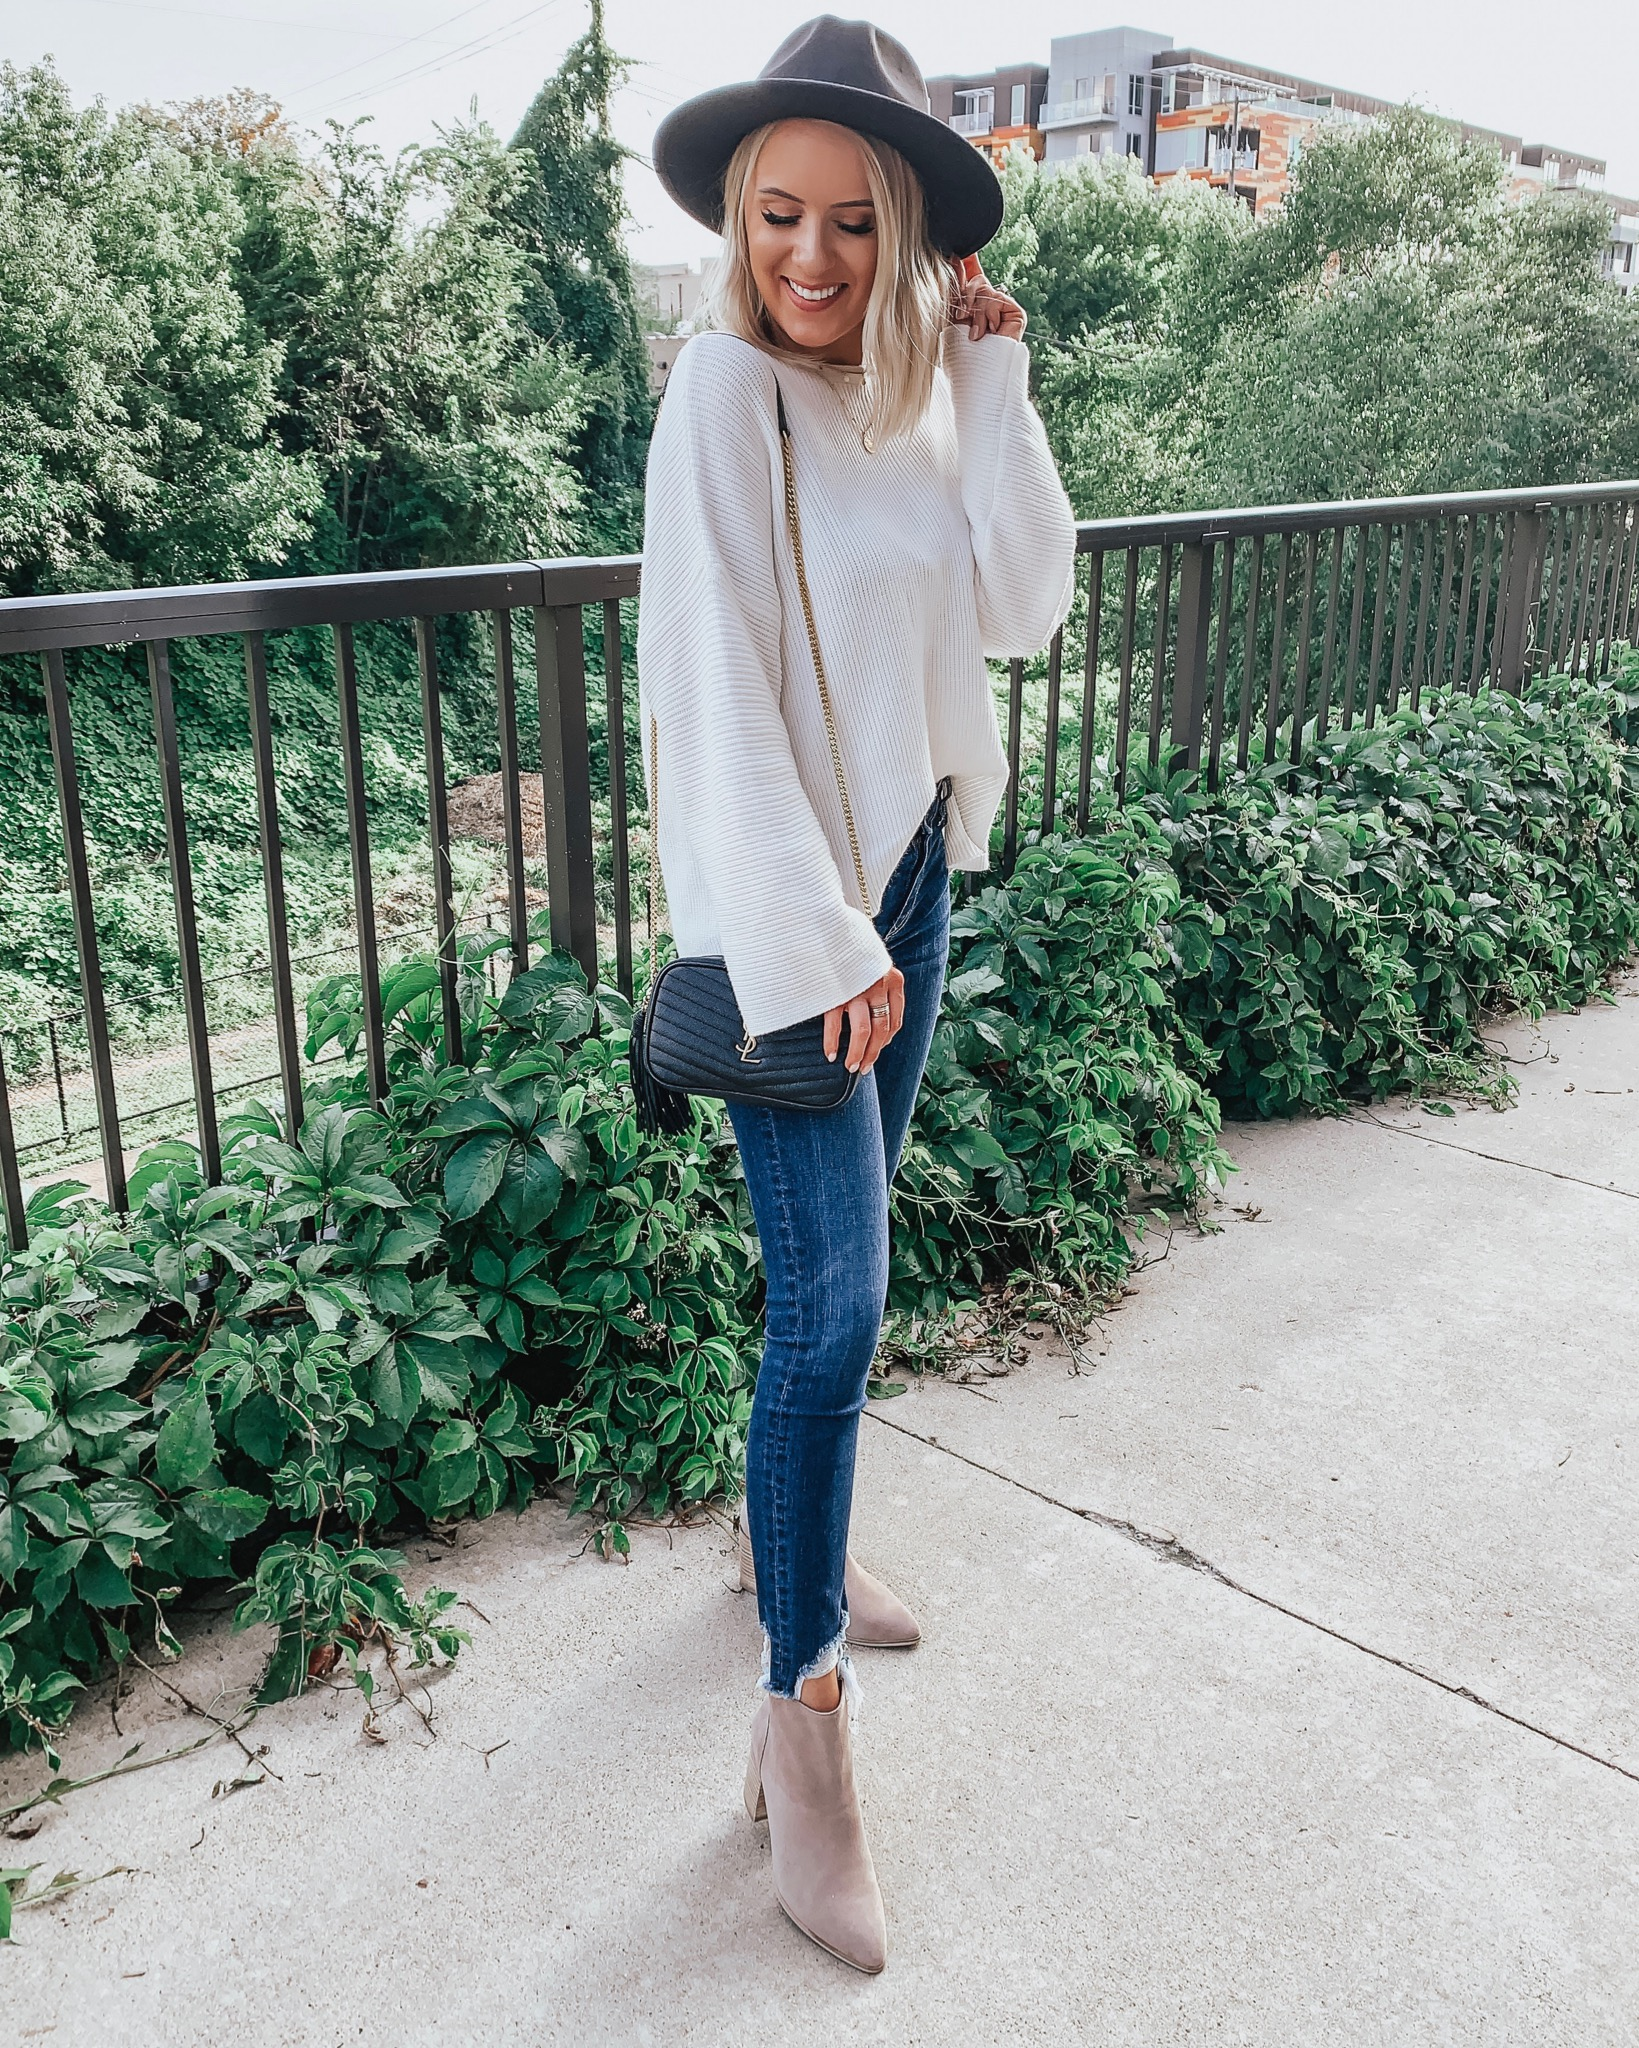 Affordable Fall Outfits | Style Blogger Lauren Meyer shares Affordable Fall Outfits